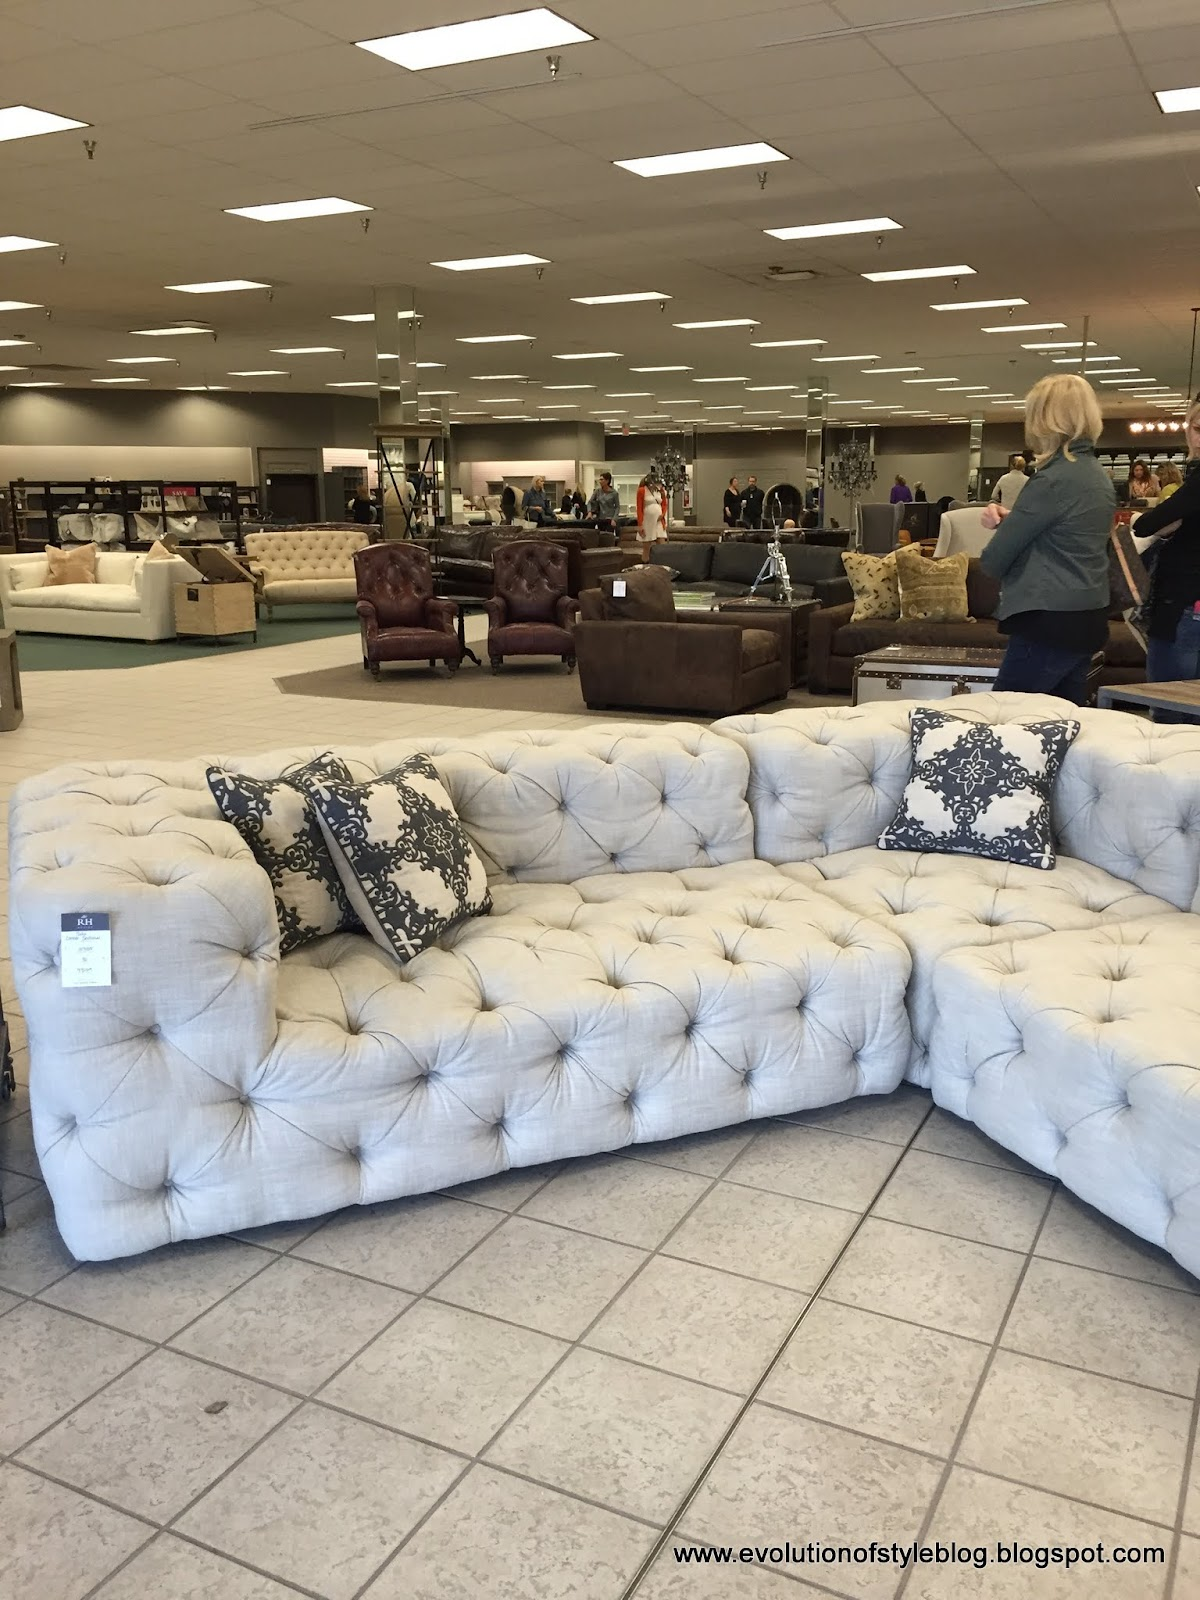 Leather Sectional Sofa Restoration Hardware Pottery Barn Sofas On Sale A Review Outlet Grand Opening Evolution Of